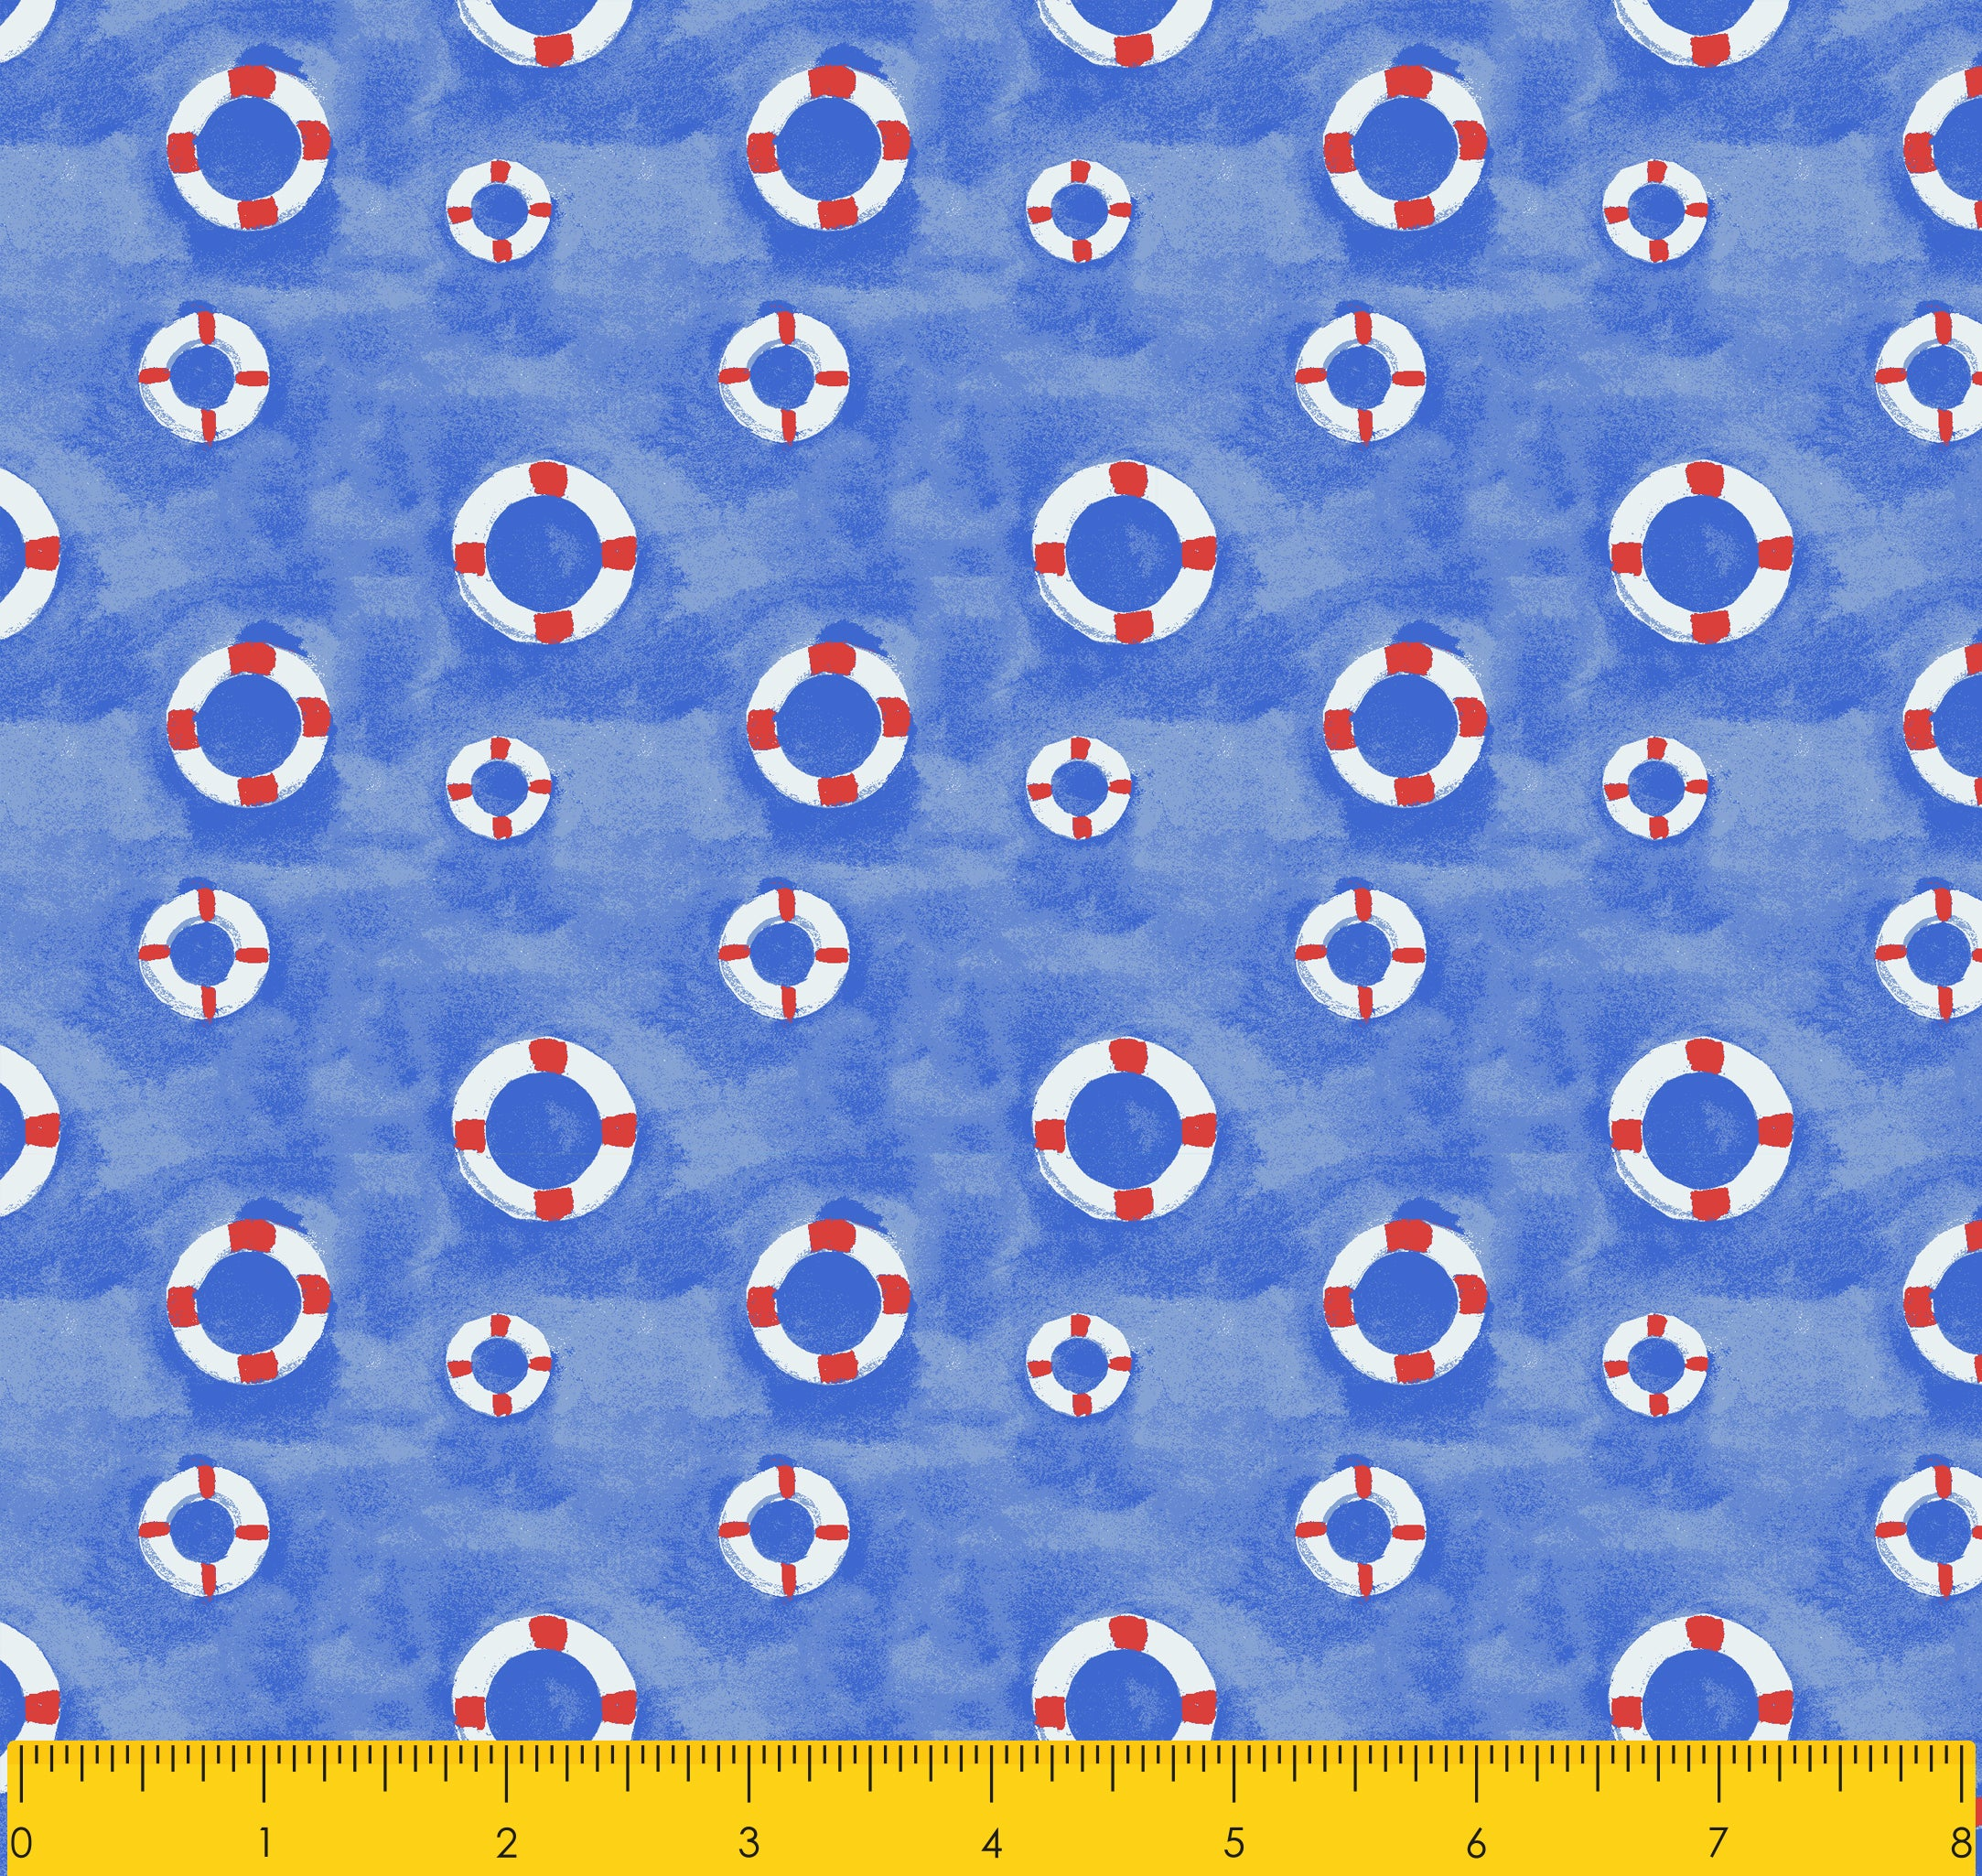 "Paul Brent PB SWIM RING 100% Cotton Prints Fabric 44"" Wide, Quilt Crafts Cut By The Yard"